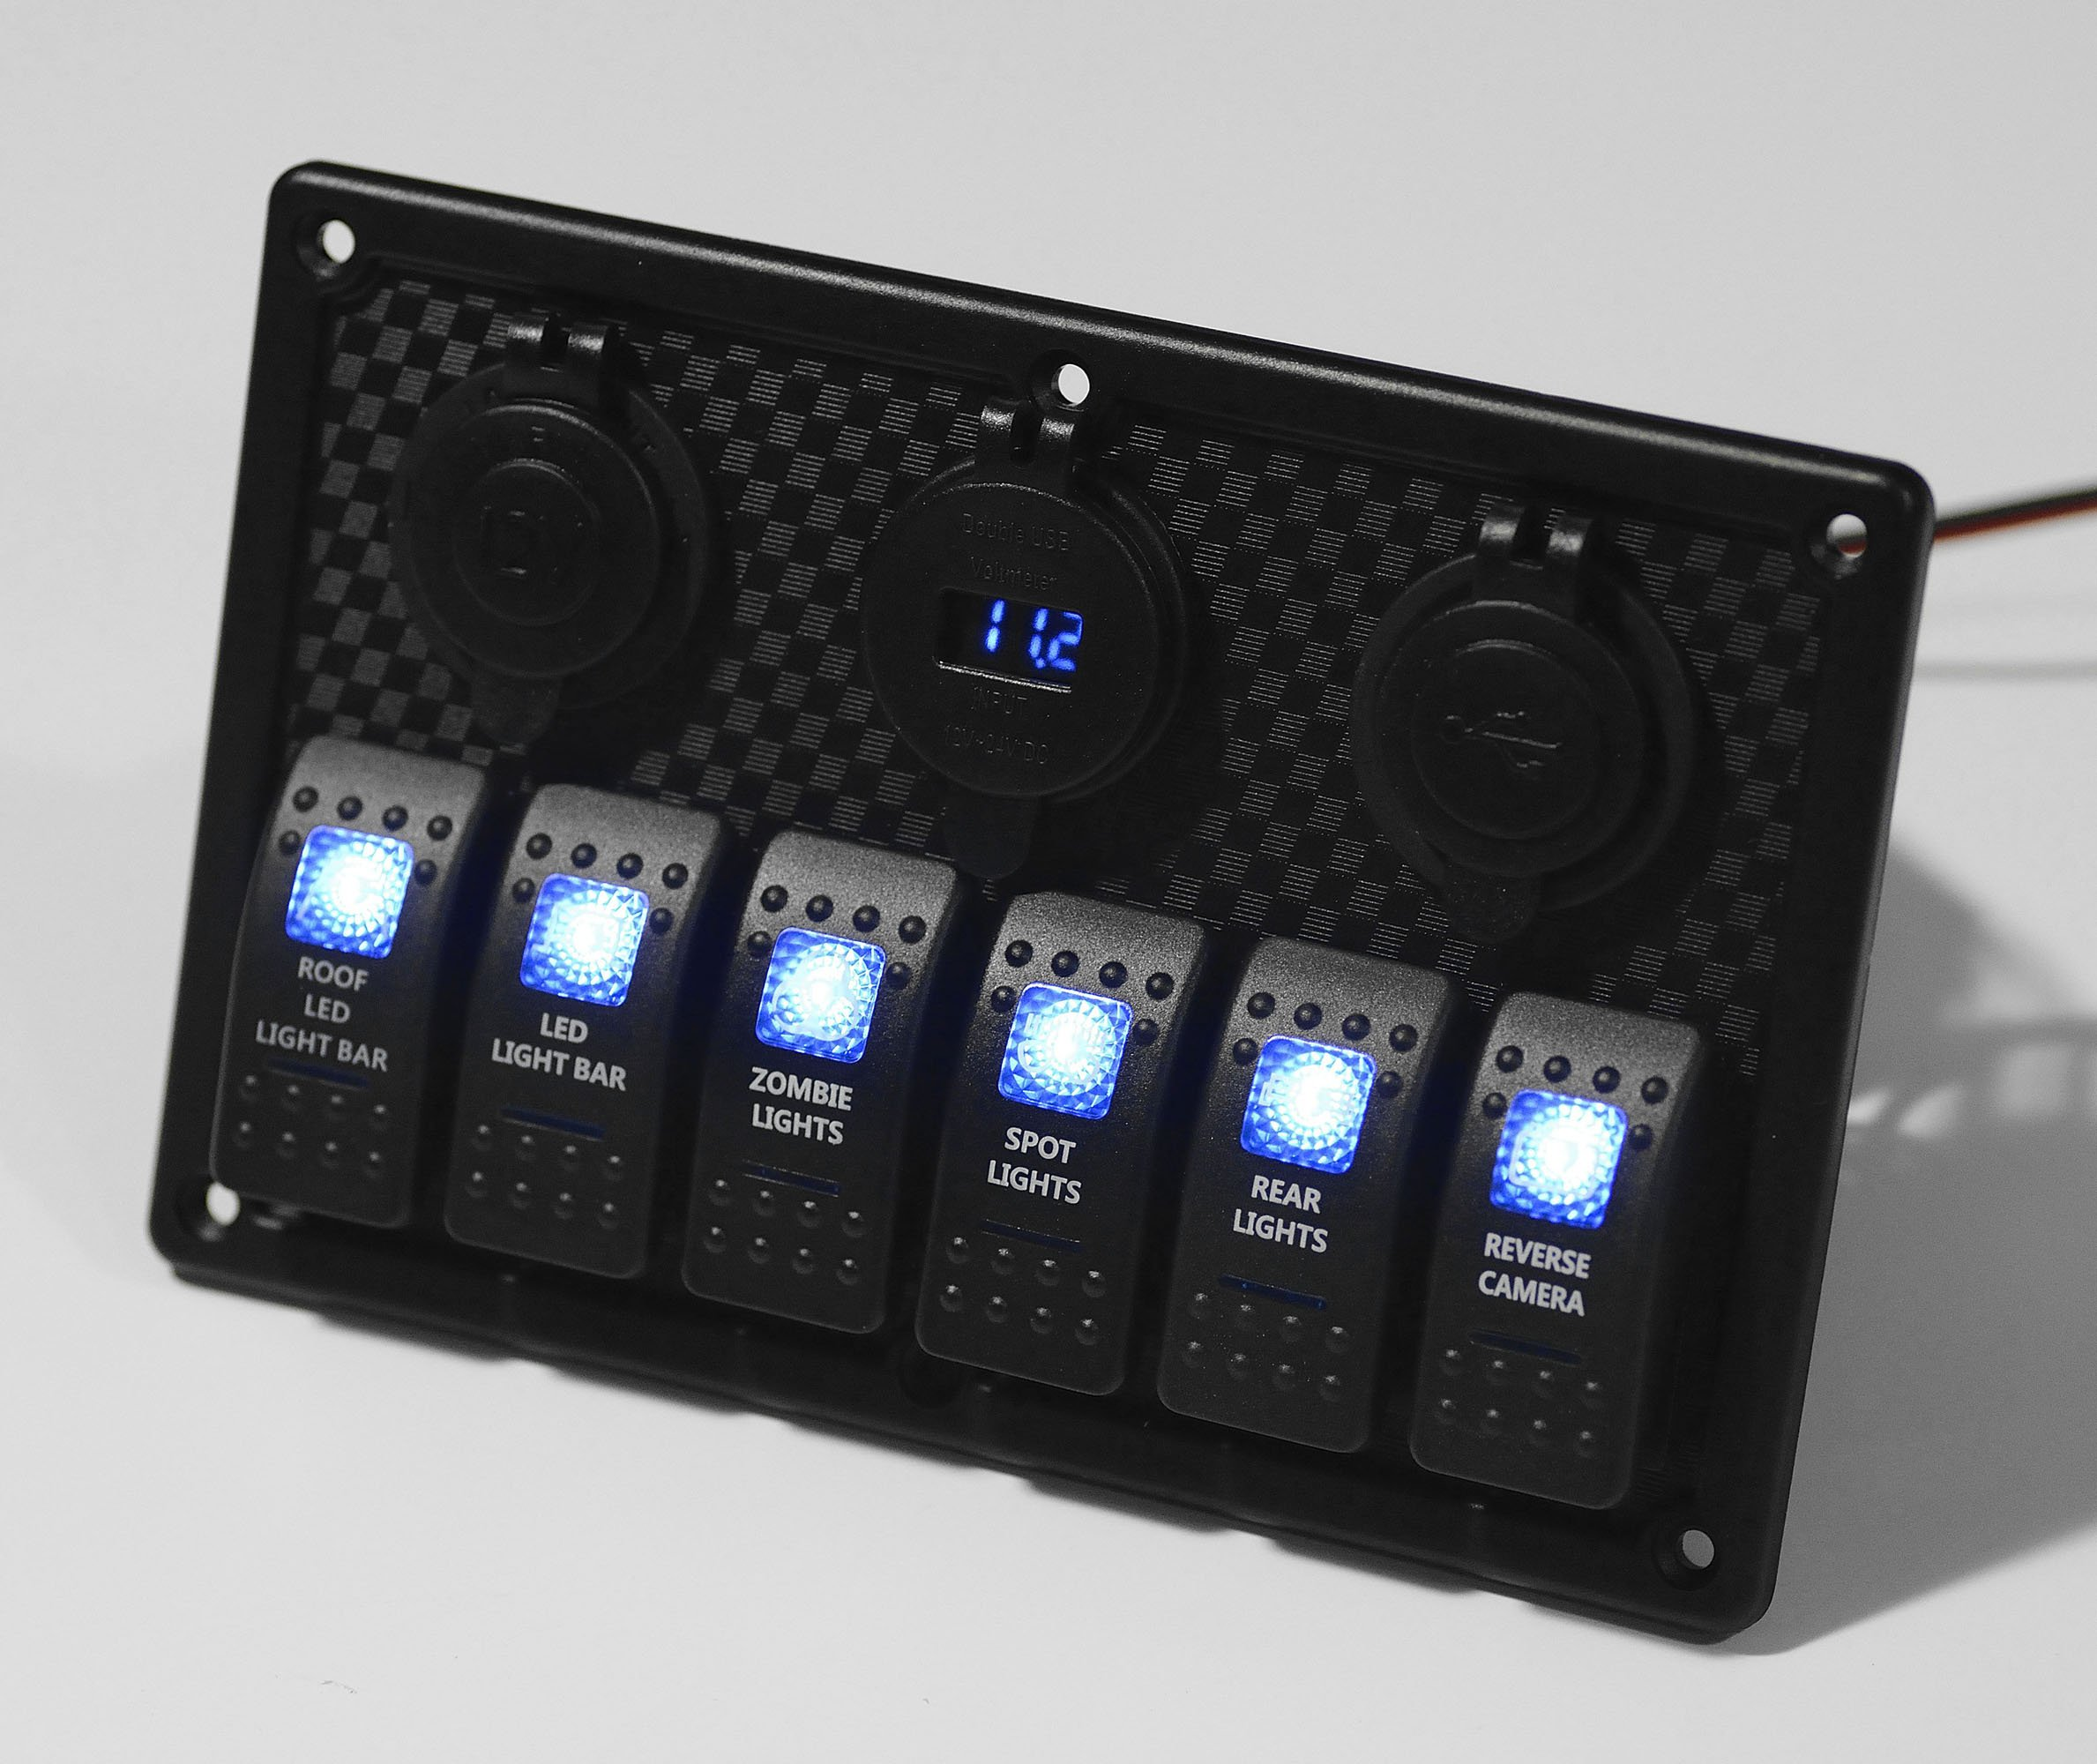 BANDC Marine Grade Boat Car Auto ATV Blue Led Lamp 6 gang Rocker Switch Panel & 12V/24V Power outlet socket & Four USB Charger ports & Voltage Meter with 3pcs 15A Fuses by BANDC (Image #2)